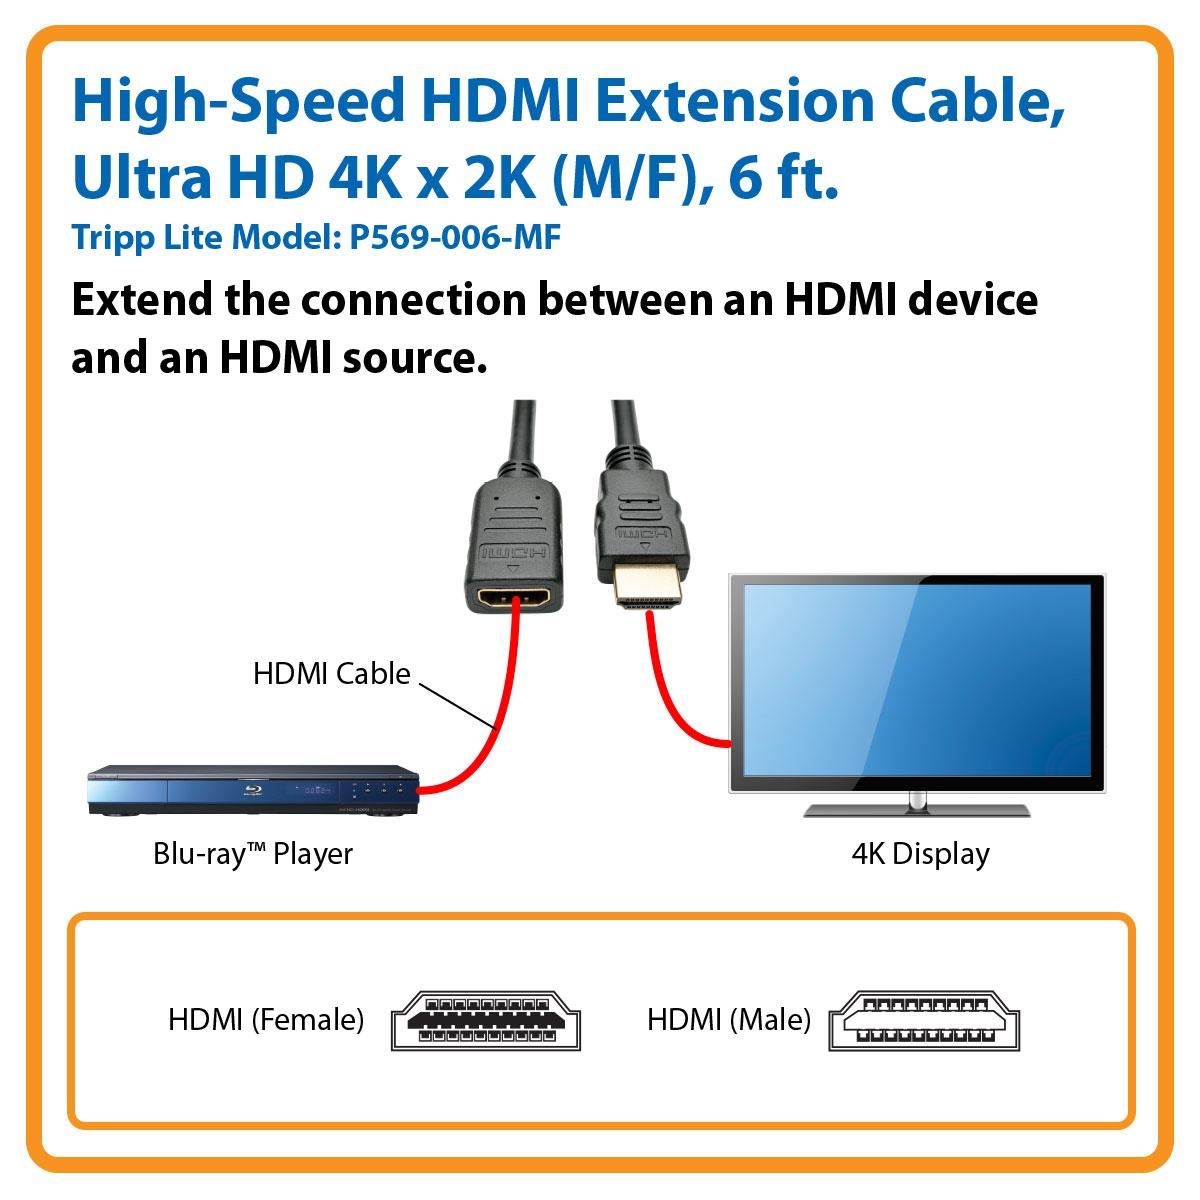 Tripp Lite High Speed Hdmi Extension Cable With Ethernet Extender Wiring Diagram Extends Existing Run To 4k Tv Projector Or Monitor